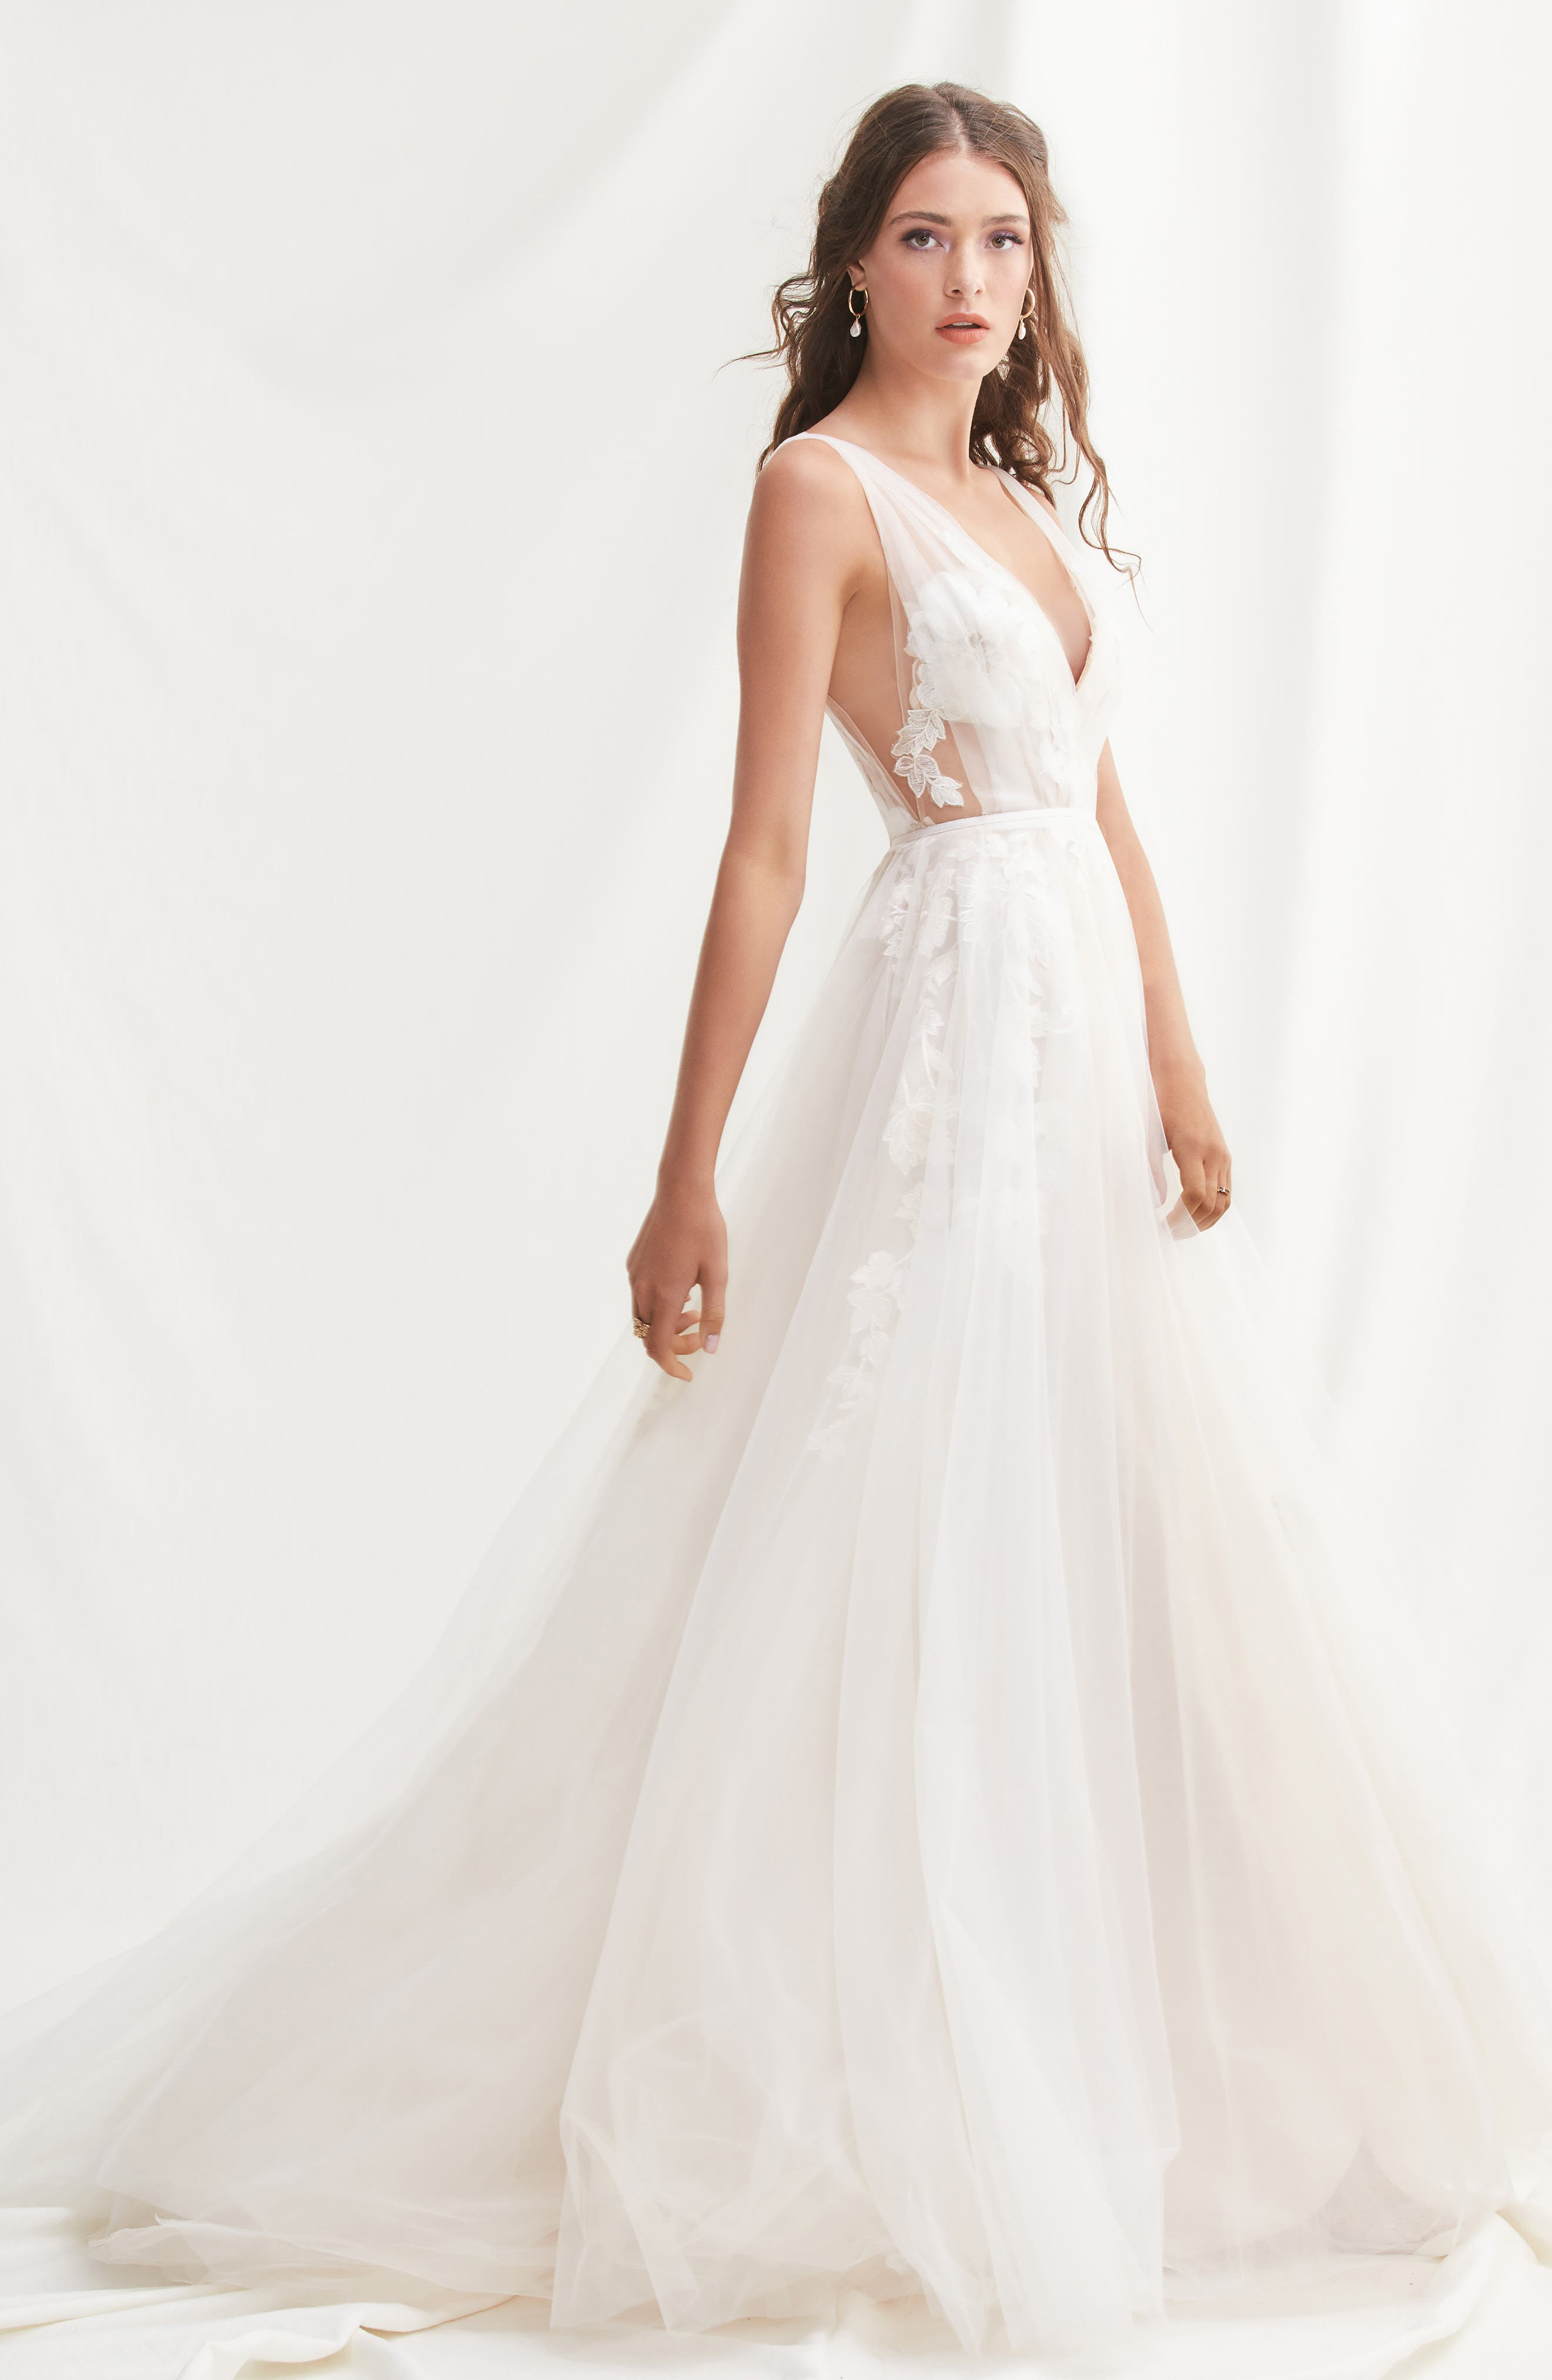 Lanie Floral Appliqué & Tulle A-Line Wedding Dress,                             Main thumbnail 1, color,                             900